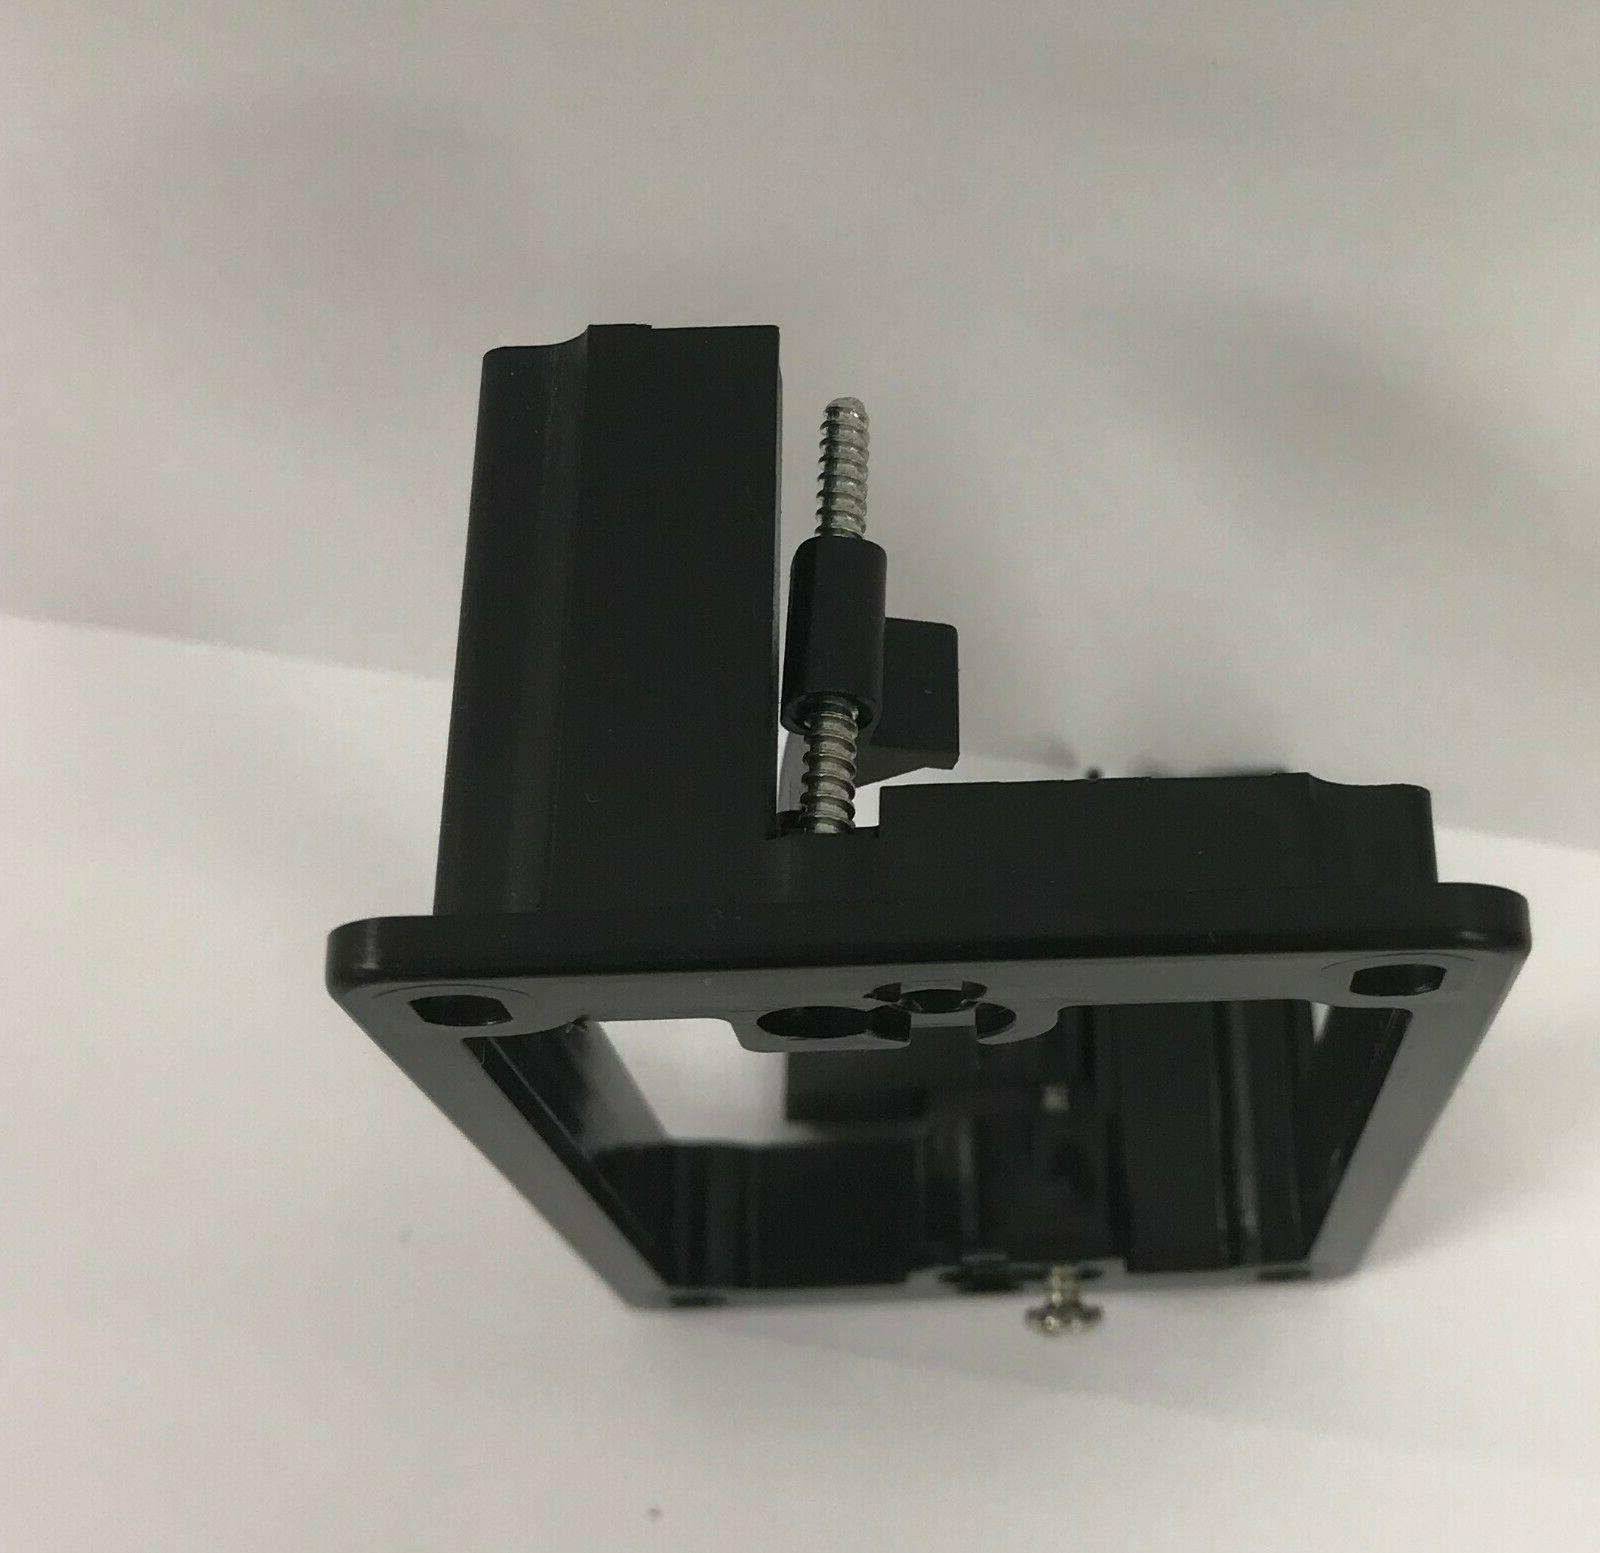 4x Low Voltage 1 Gang Bracket DryWall Mounting Wall